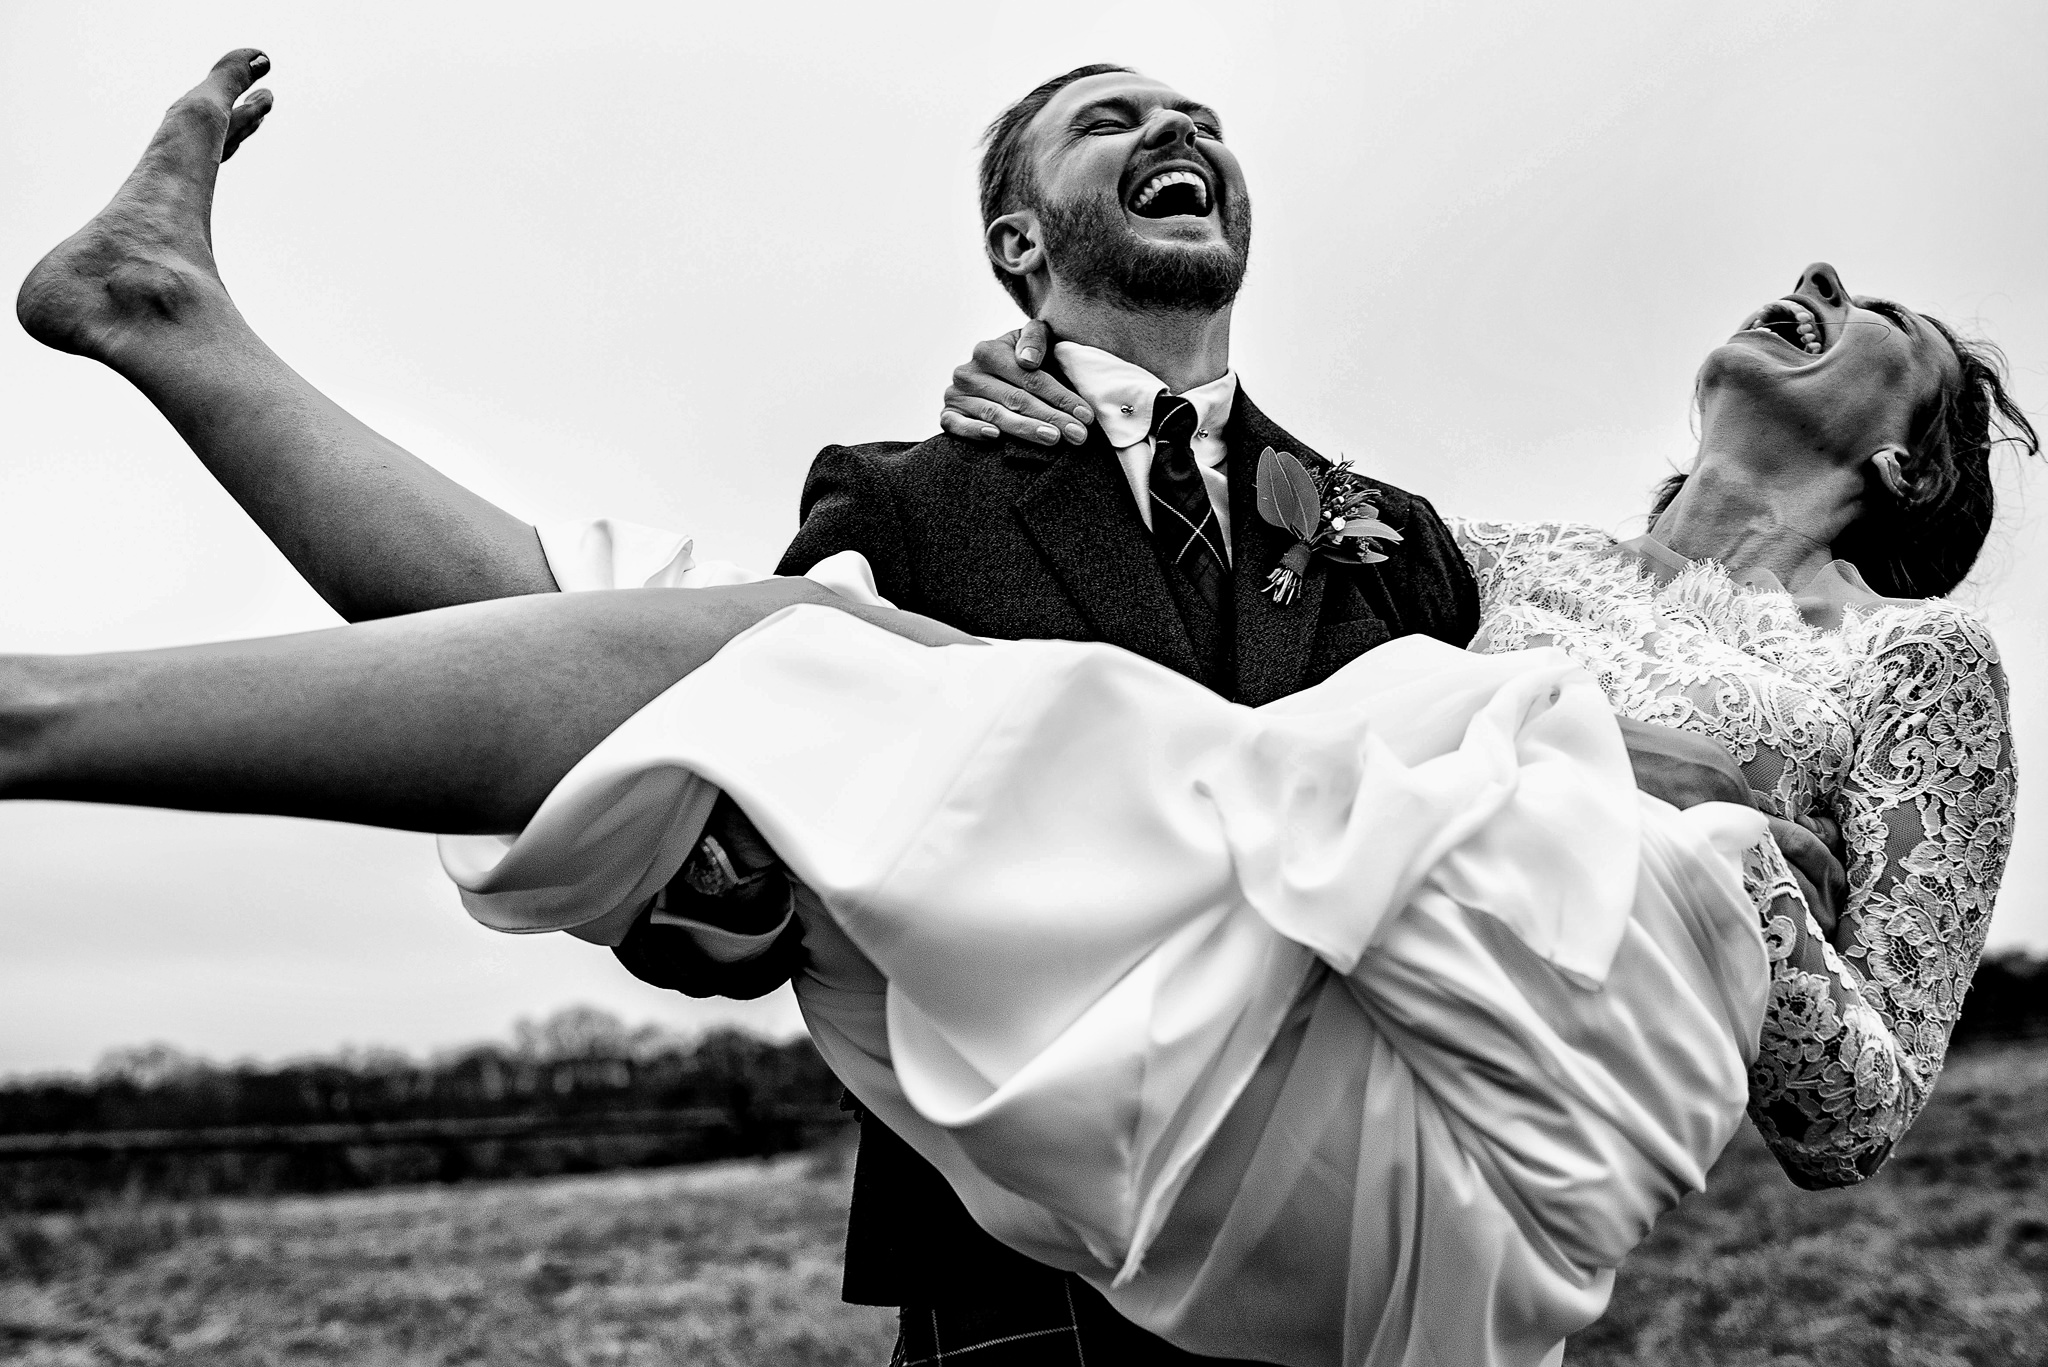 groom-holding-bride-while-they-both-laugh-uproariously-rich-howman